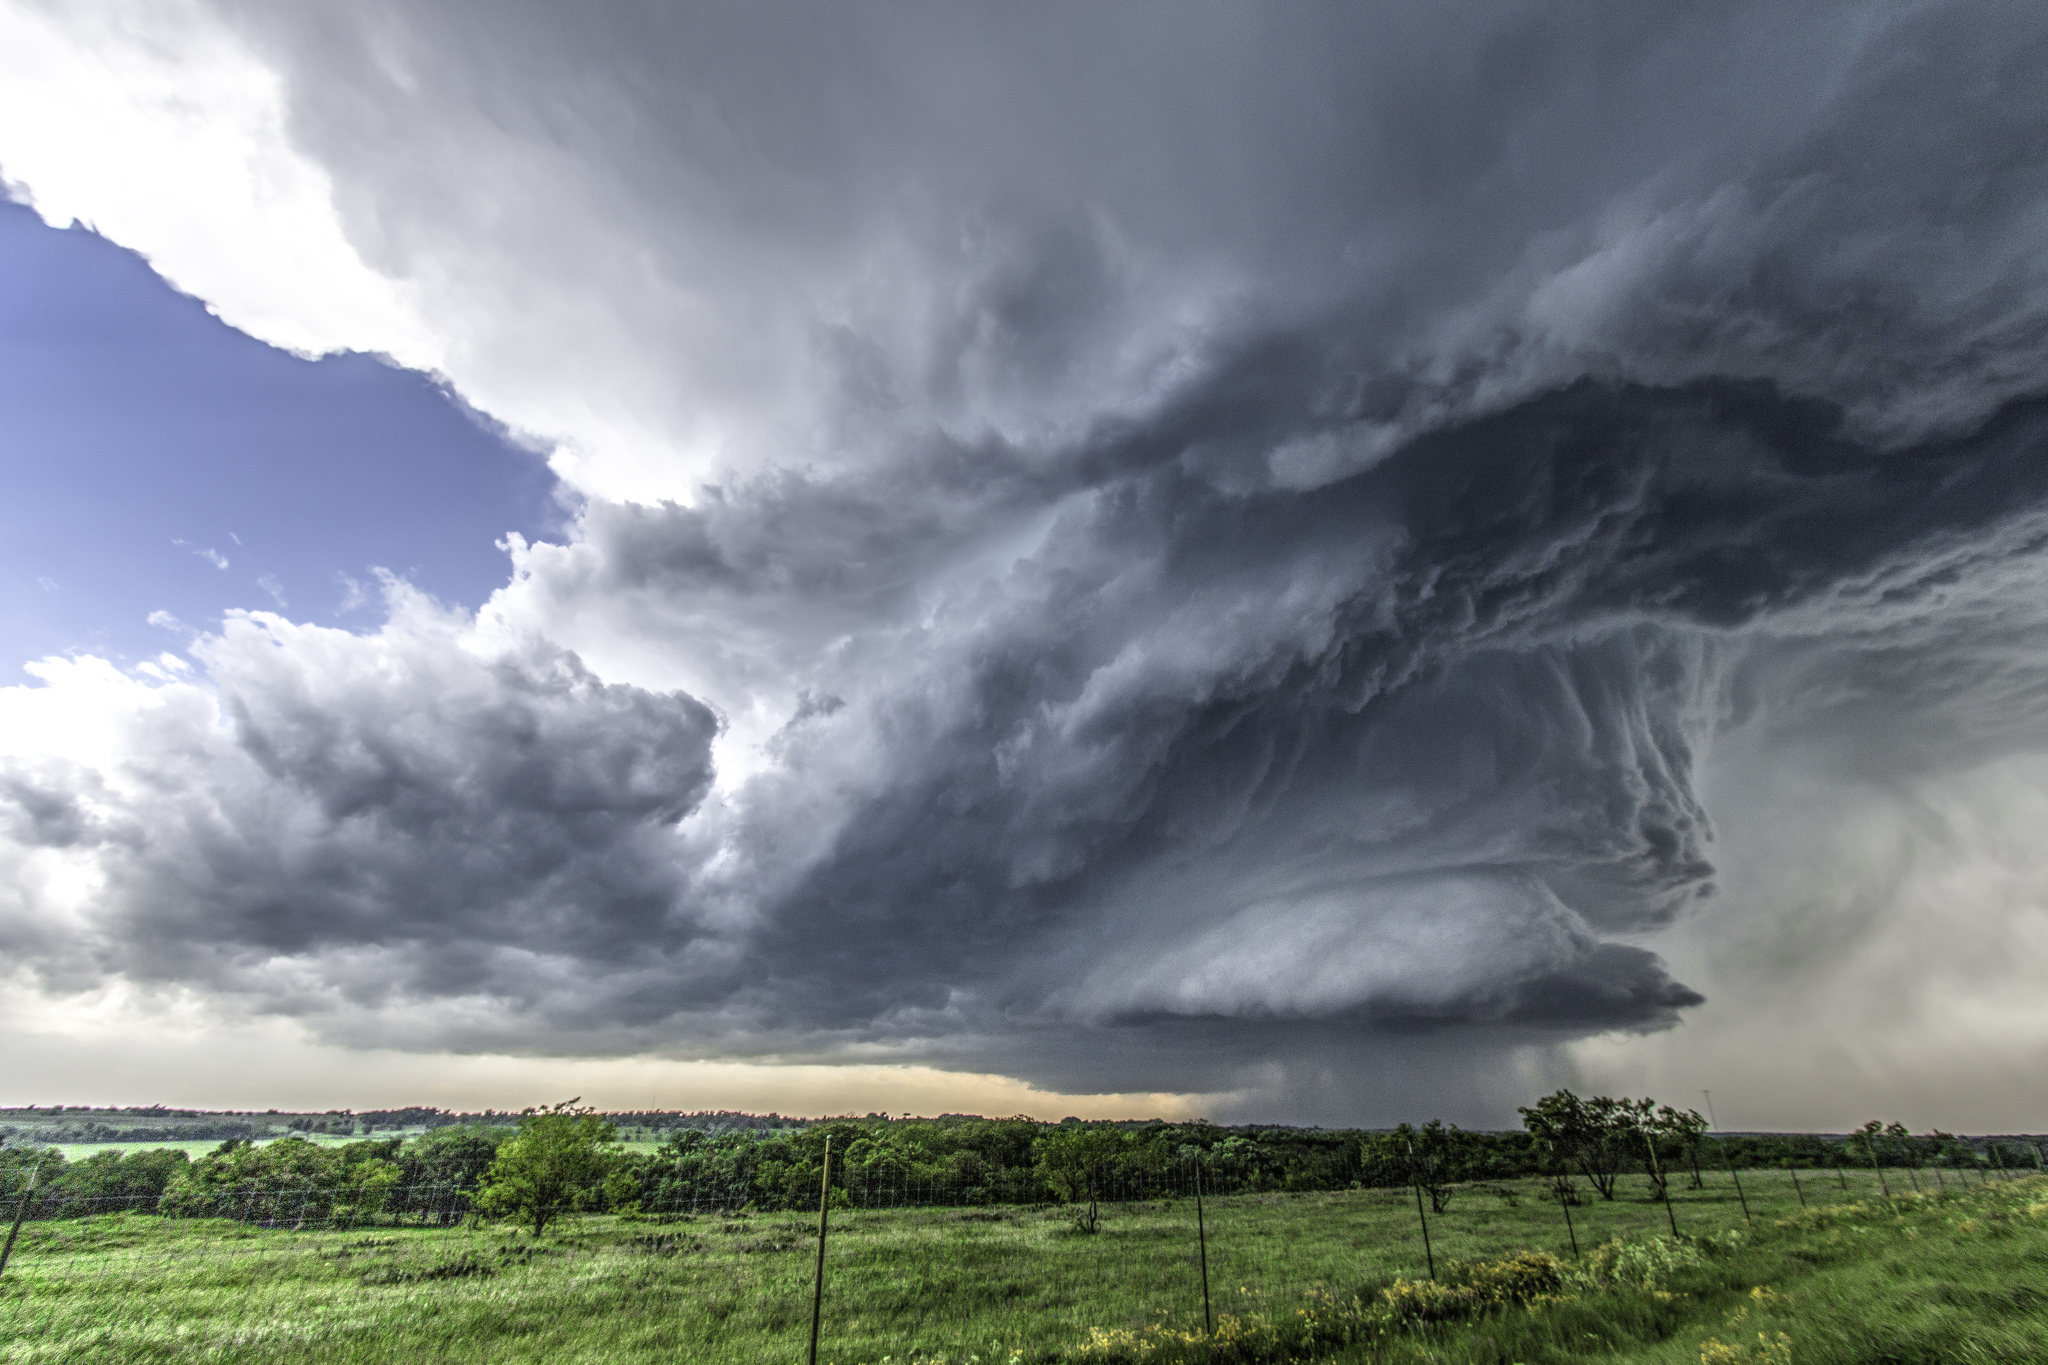 Aerosols Strengthen Storm Clouds, According to New Study ...